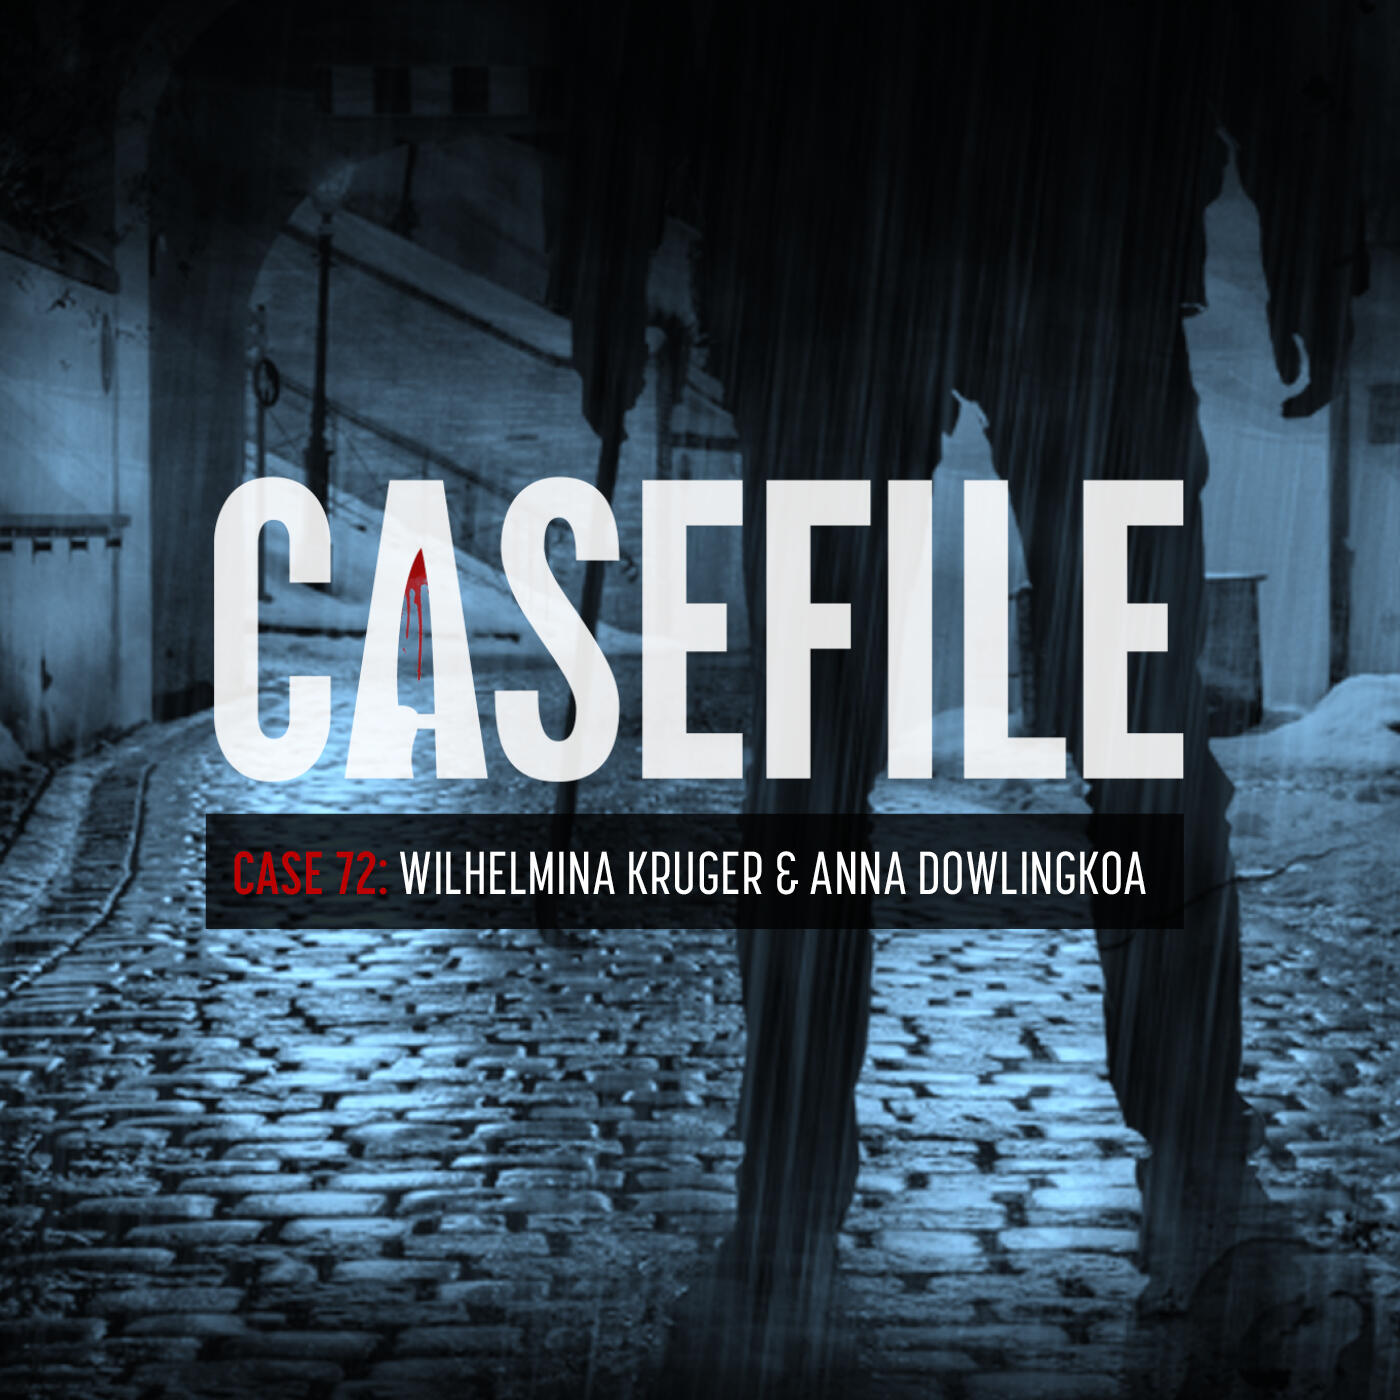 Case 72: Wilhelmina Kruger and Anna Dowlingkoa